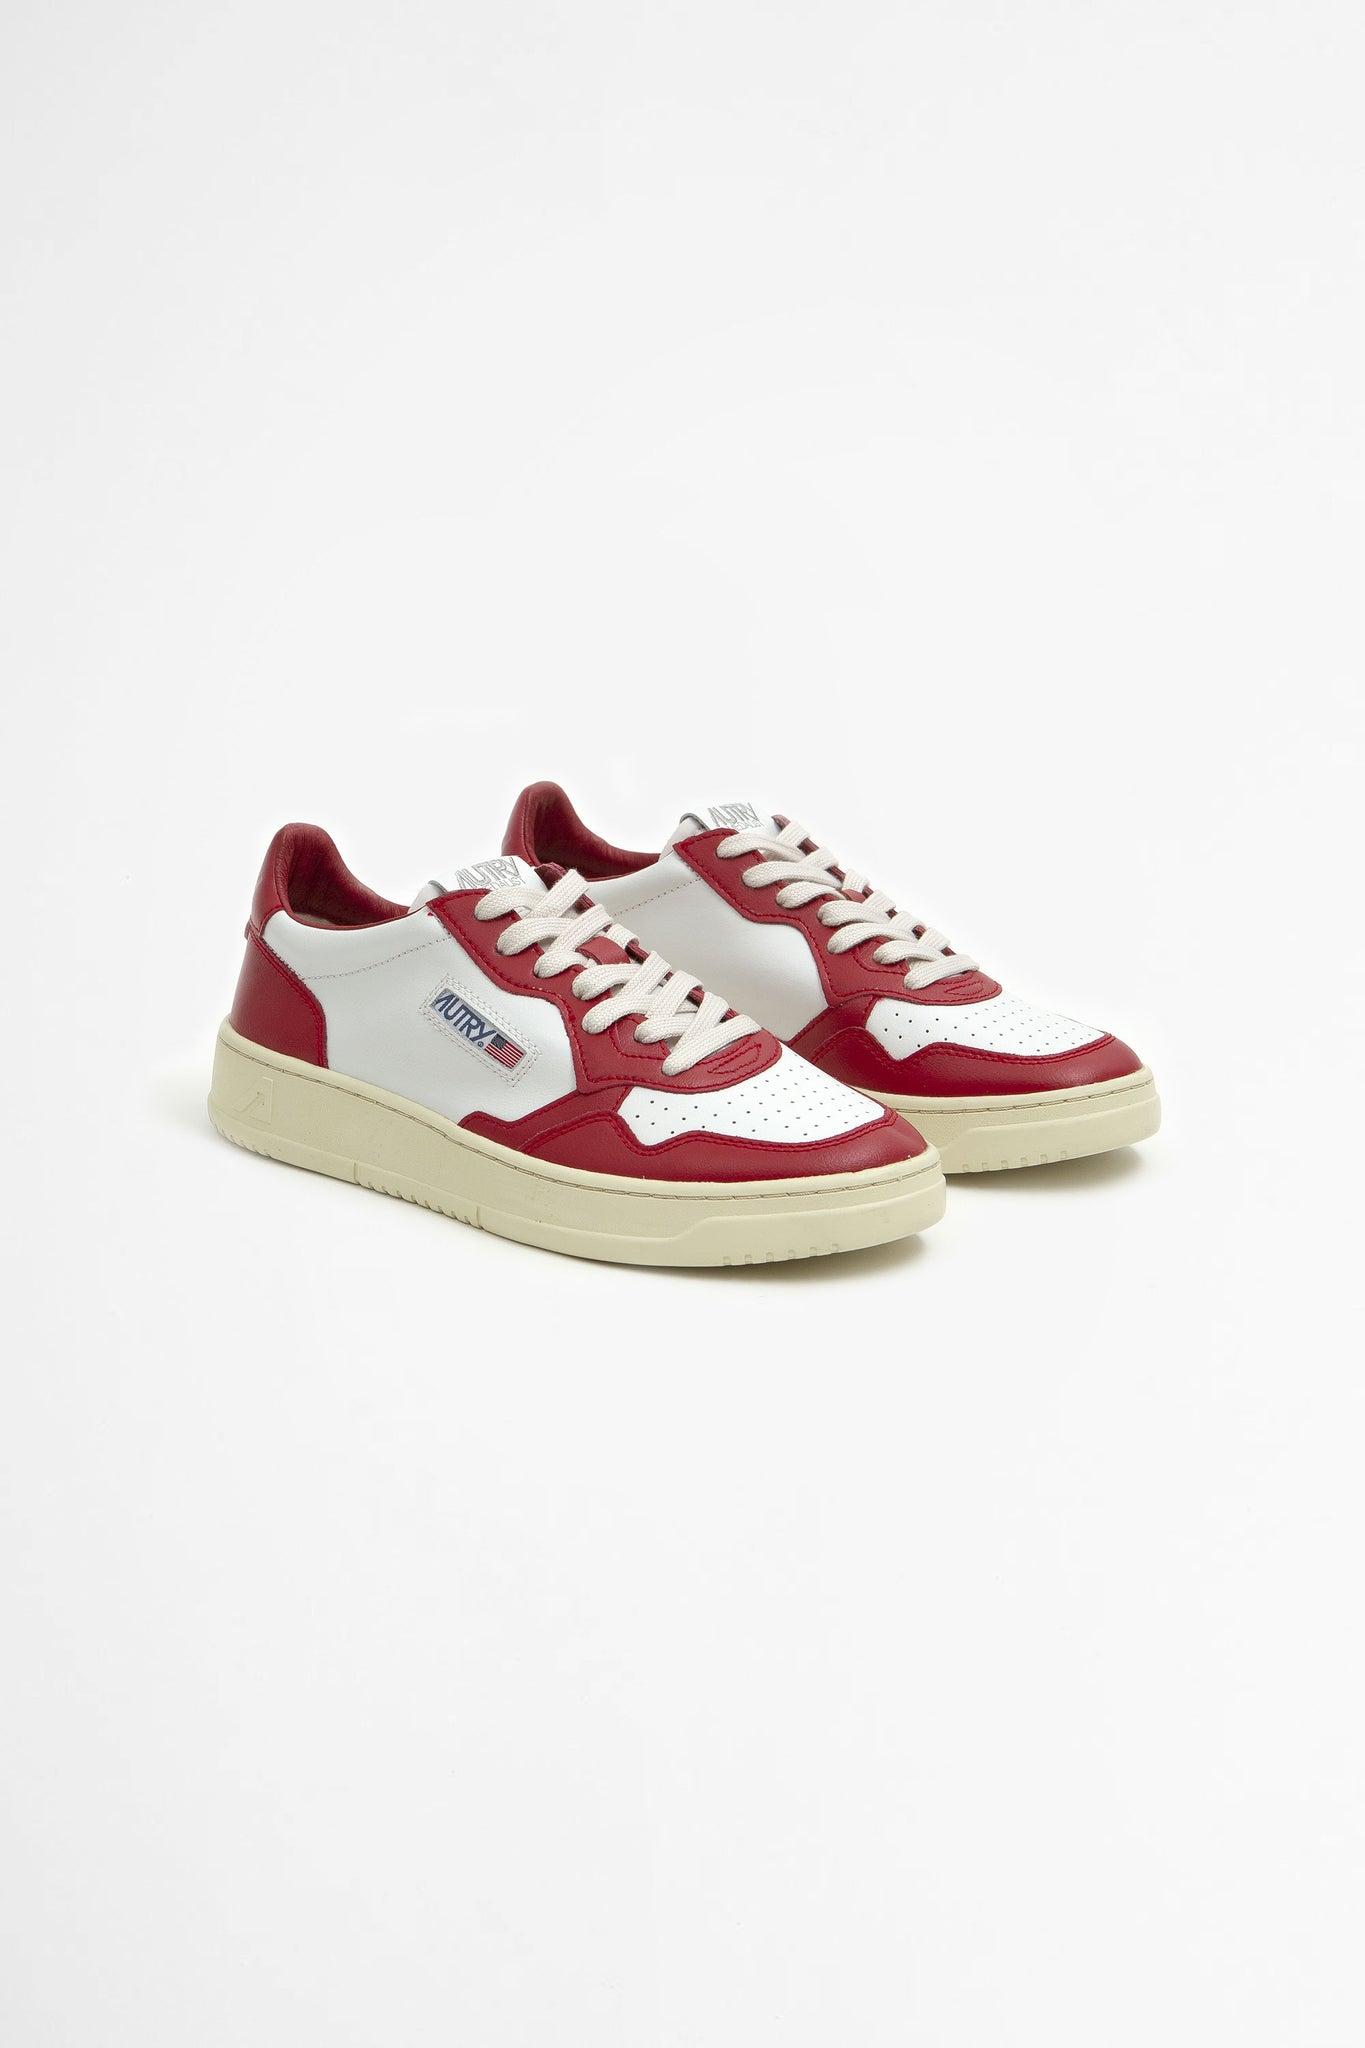 Low leat/ leat white/ red